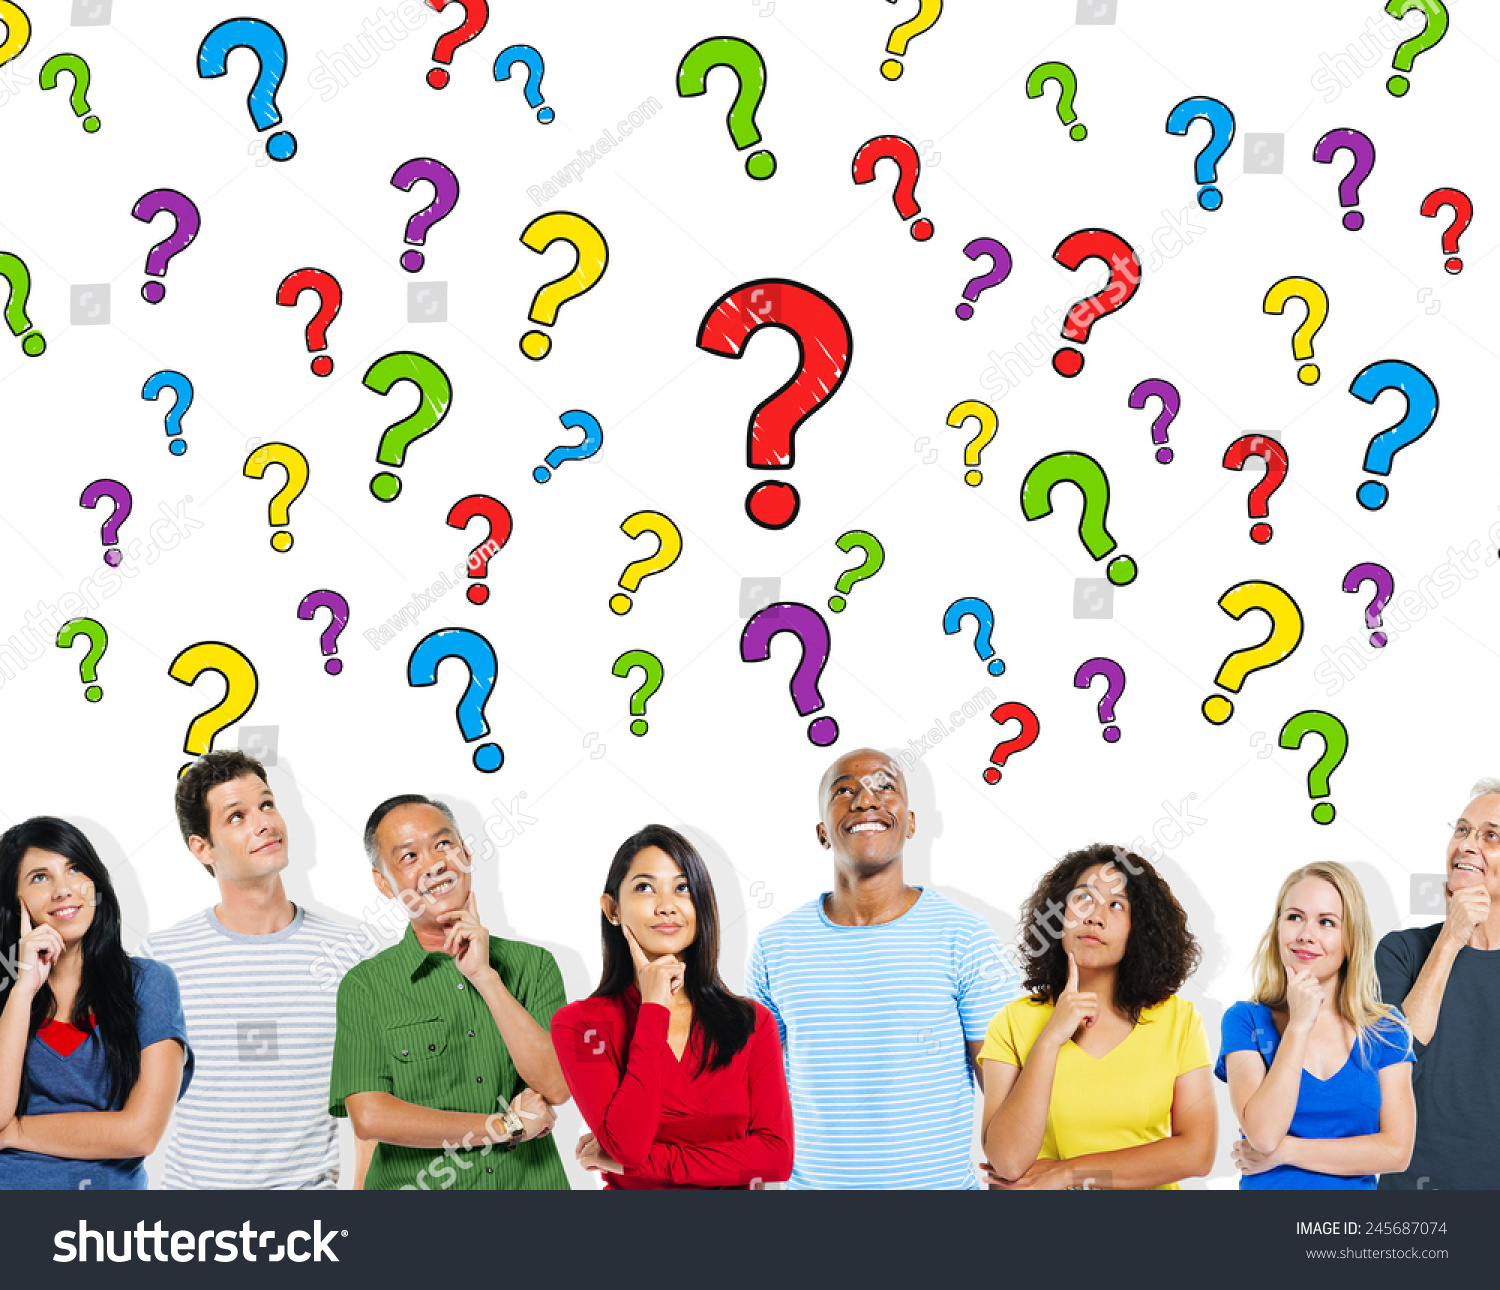 People Asking Questions To Each Other